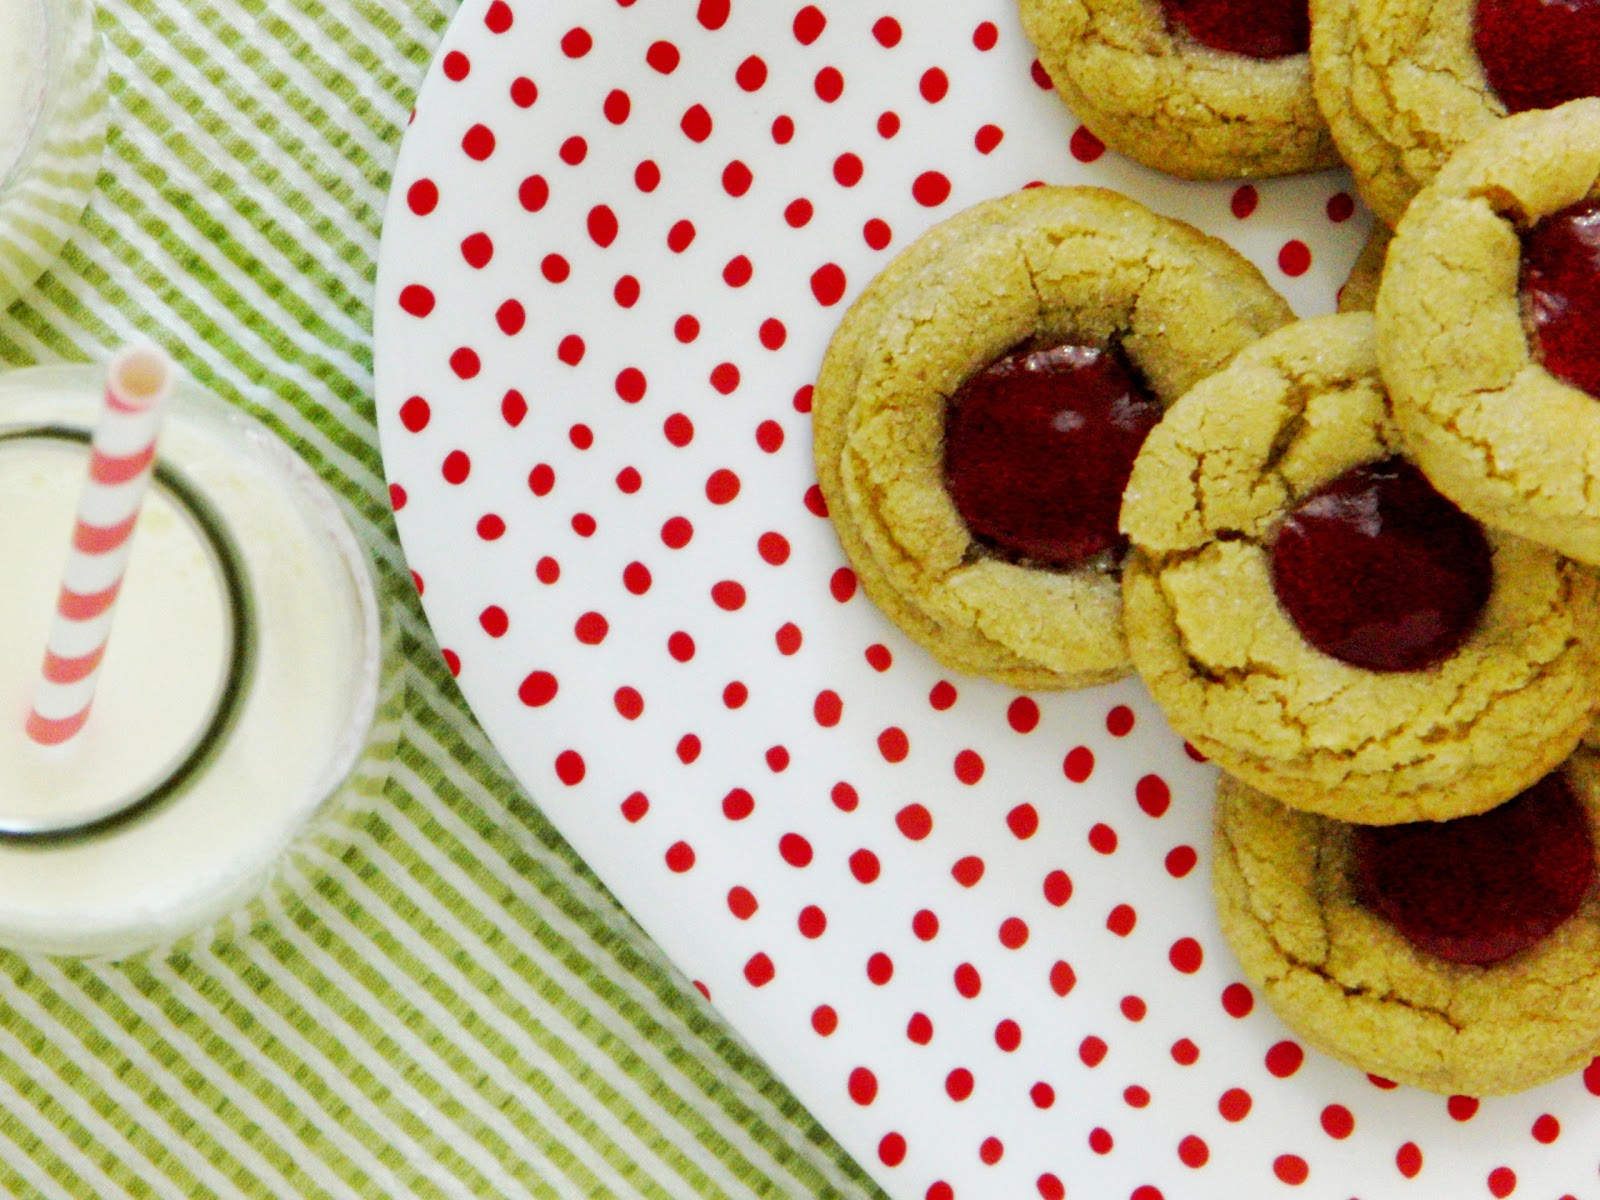 Curly Girl Kitchen: Peanut Butter and Jelly Thumbprint Cookies